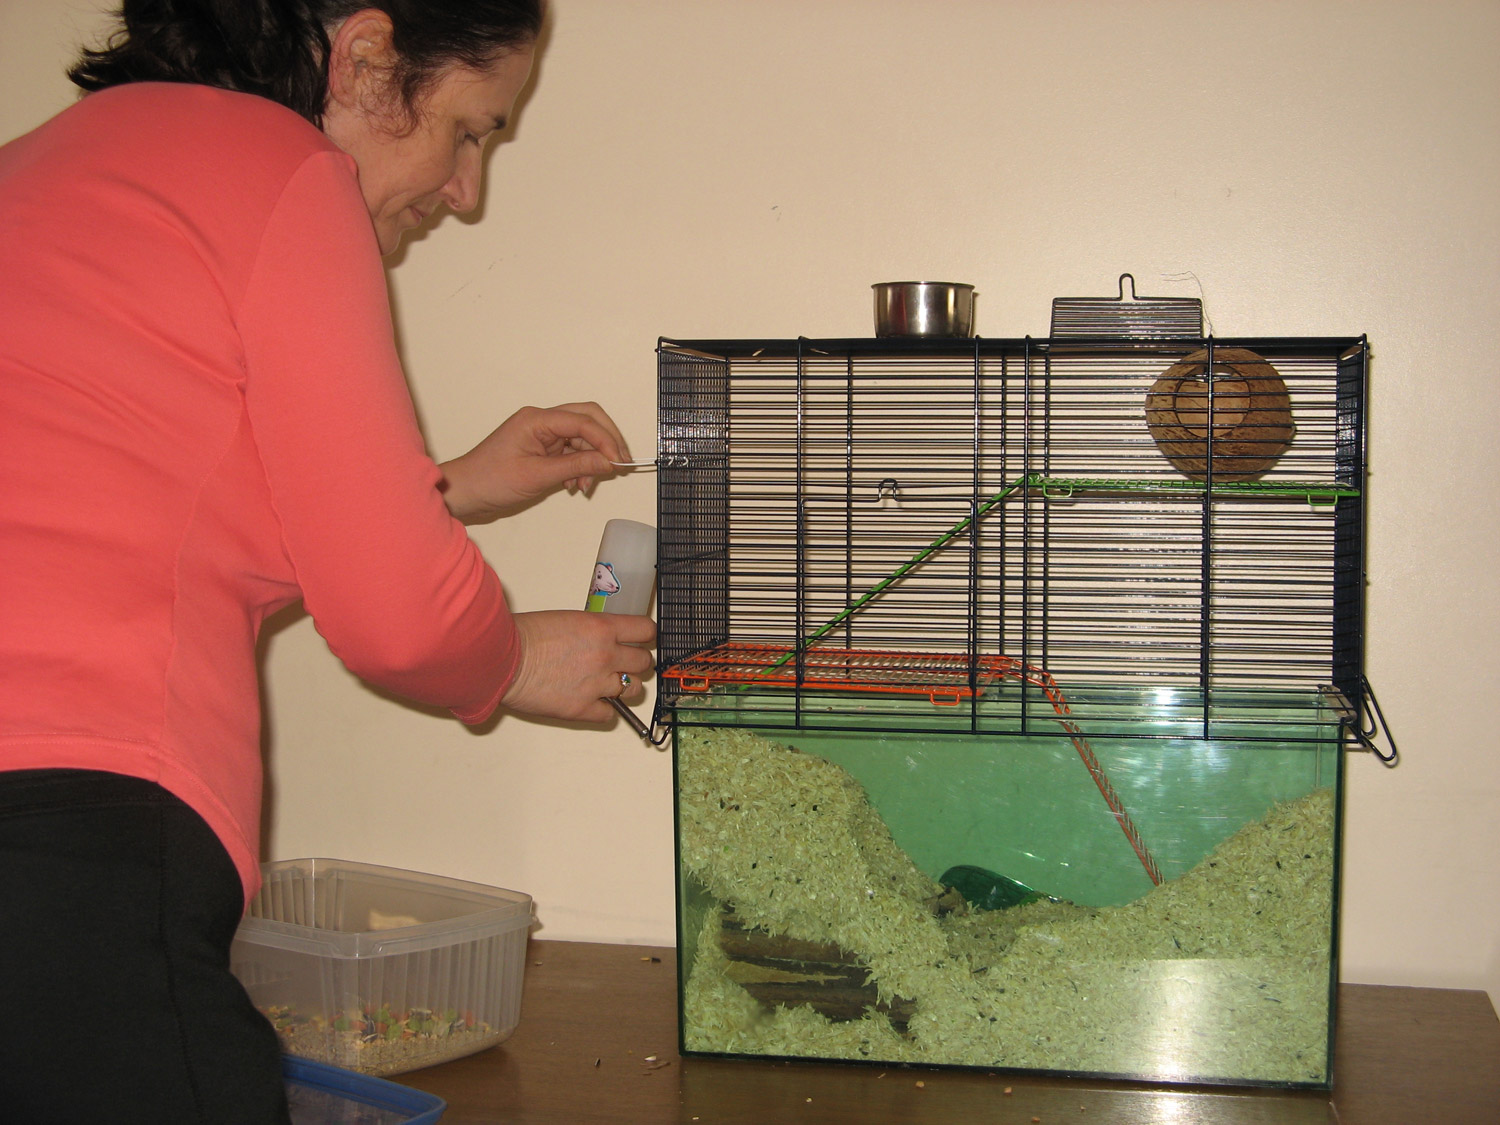 Looking after Small Animals